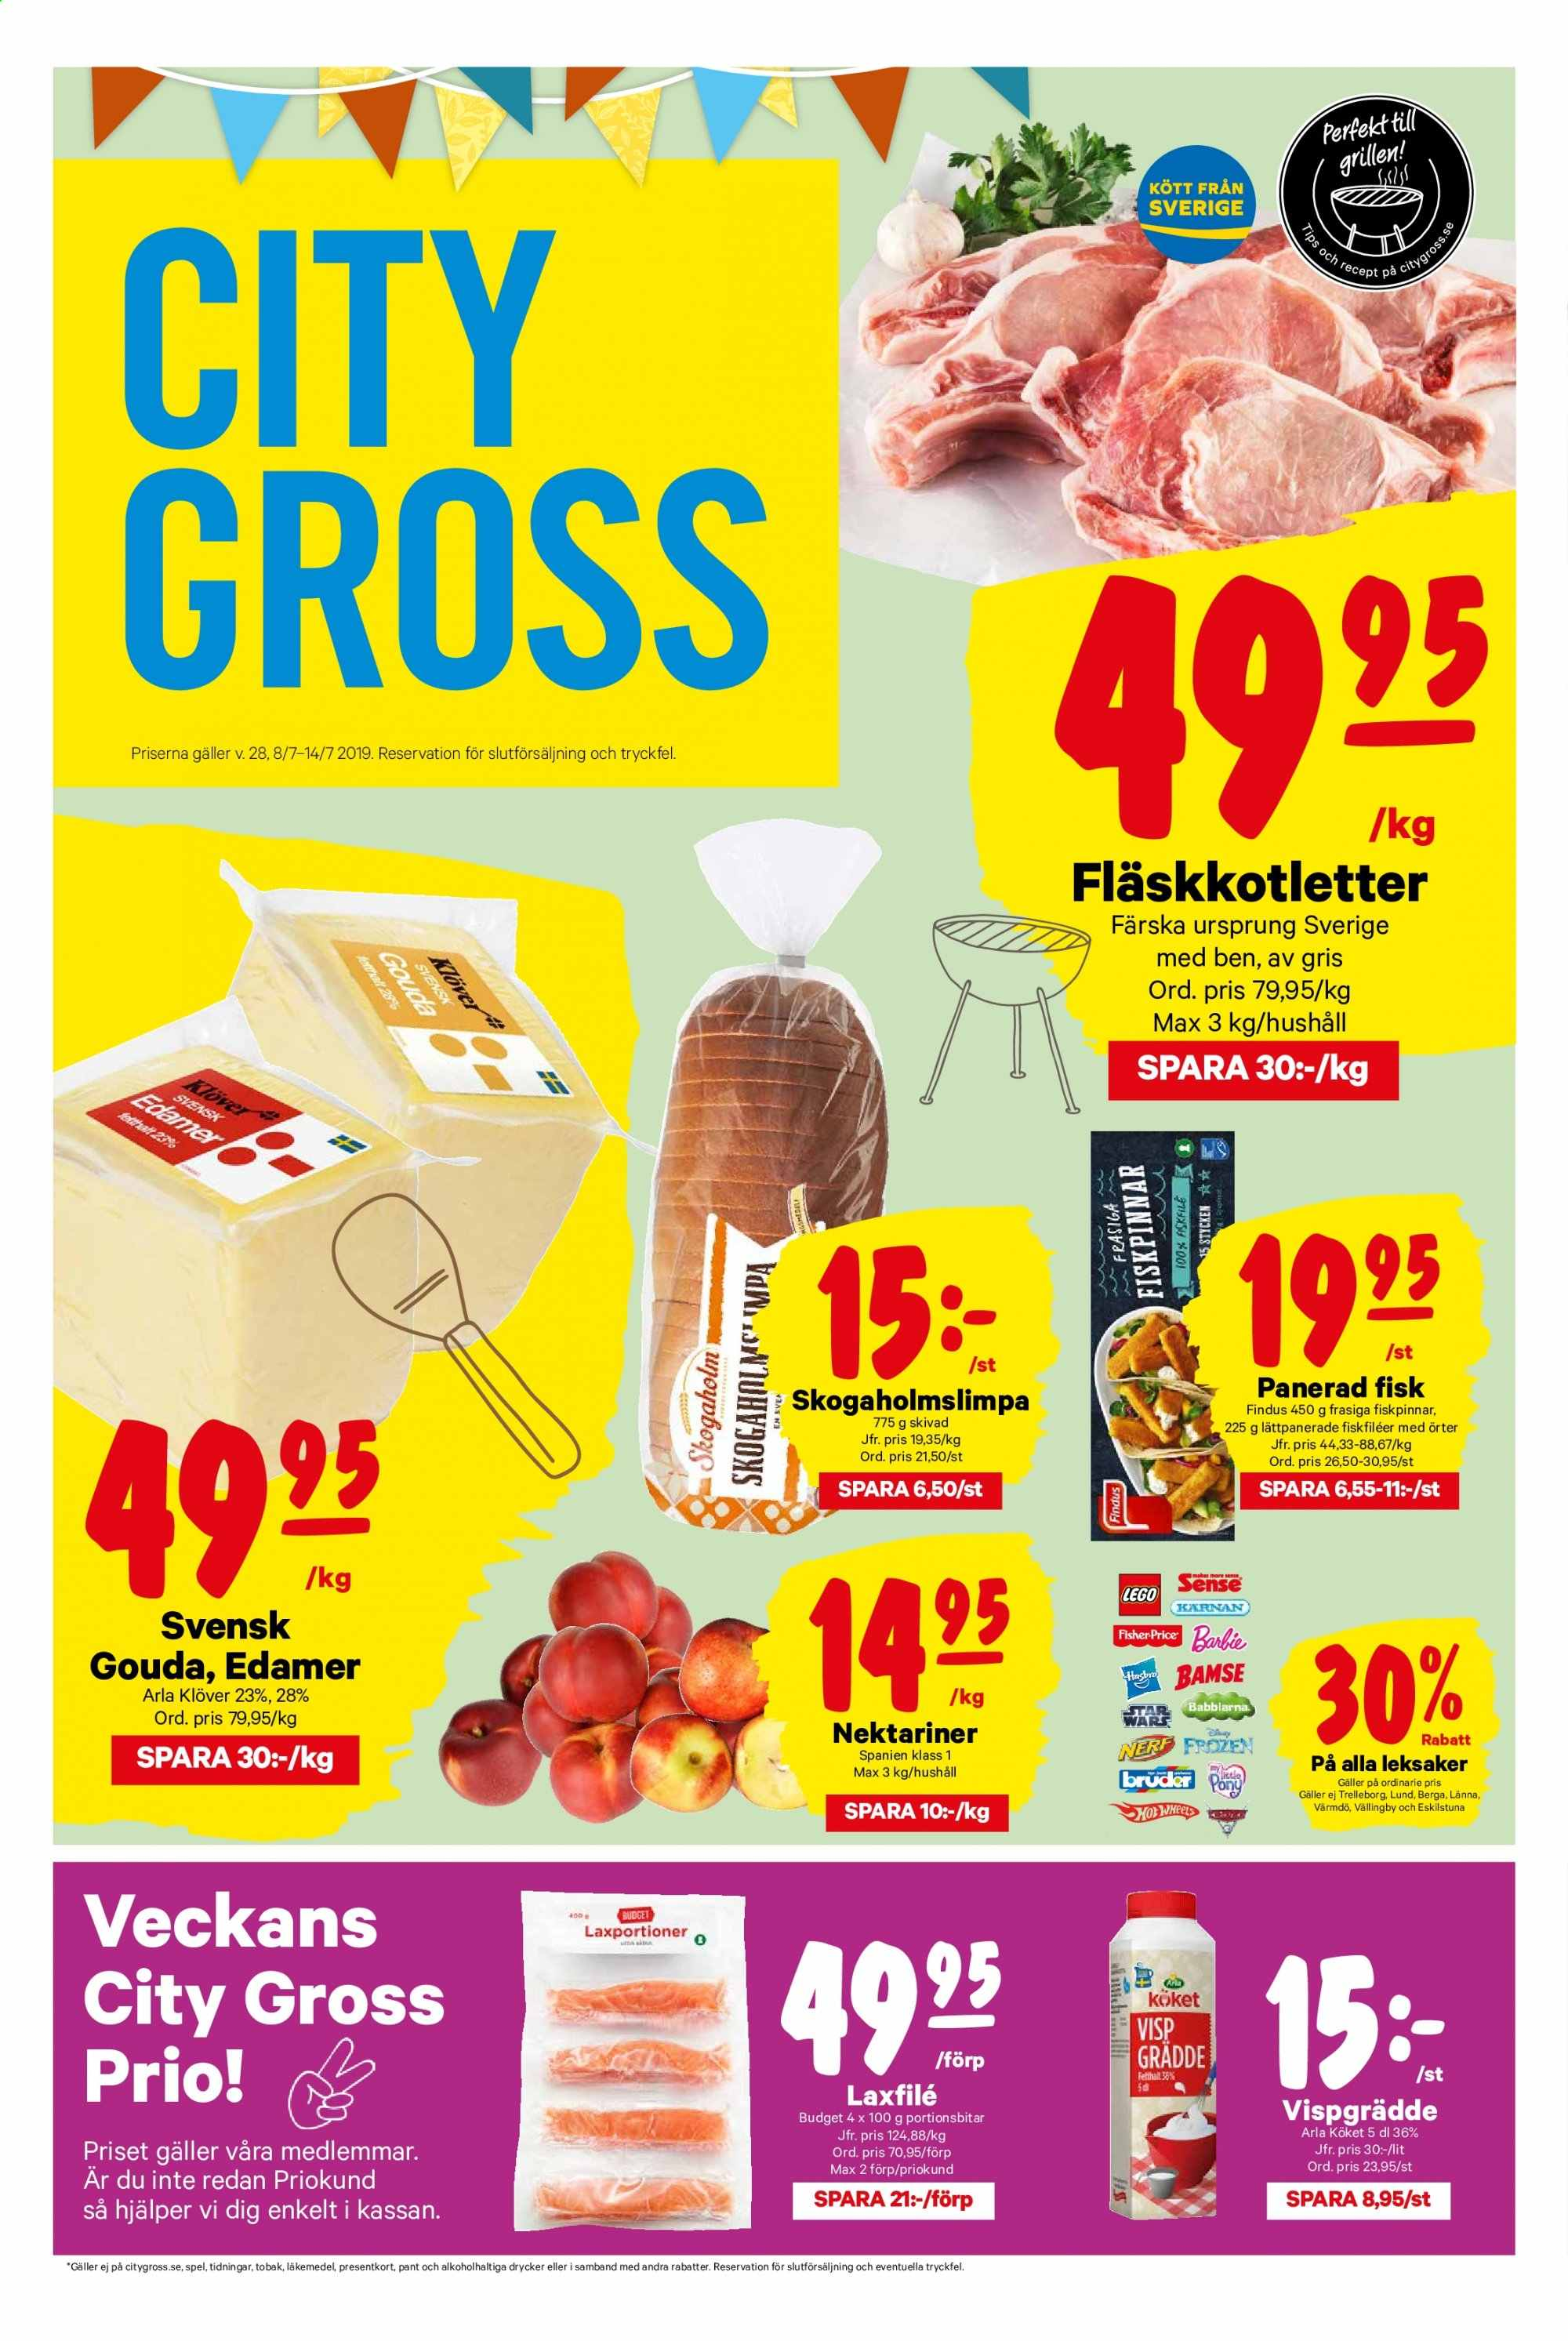 City Gross reklamblad - 8/7 2019 - 14/7 2019. Sida 1.